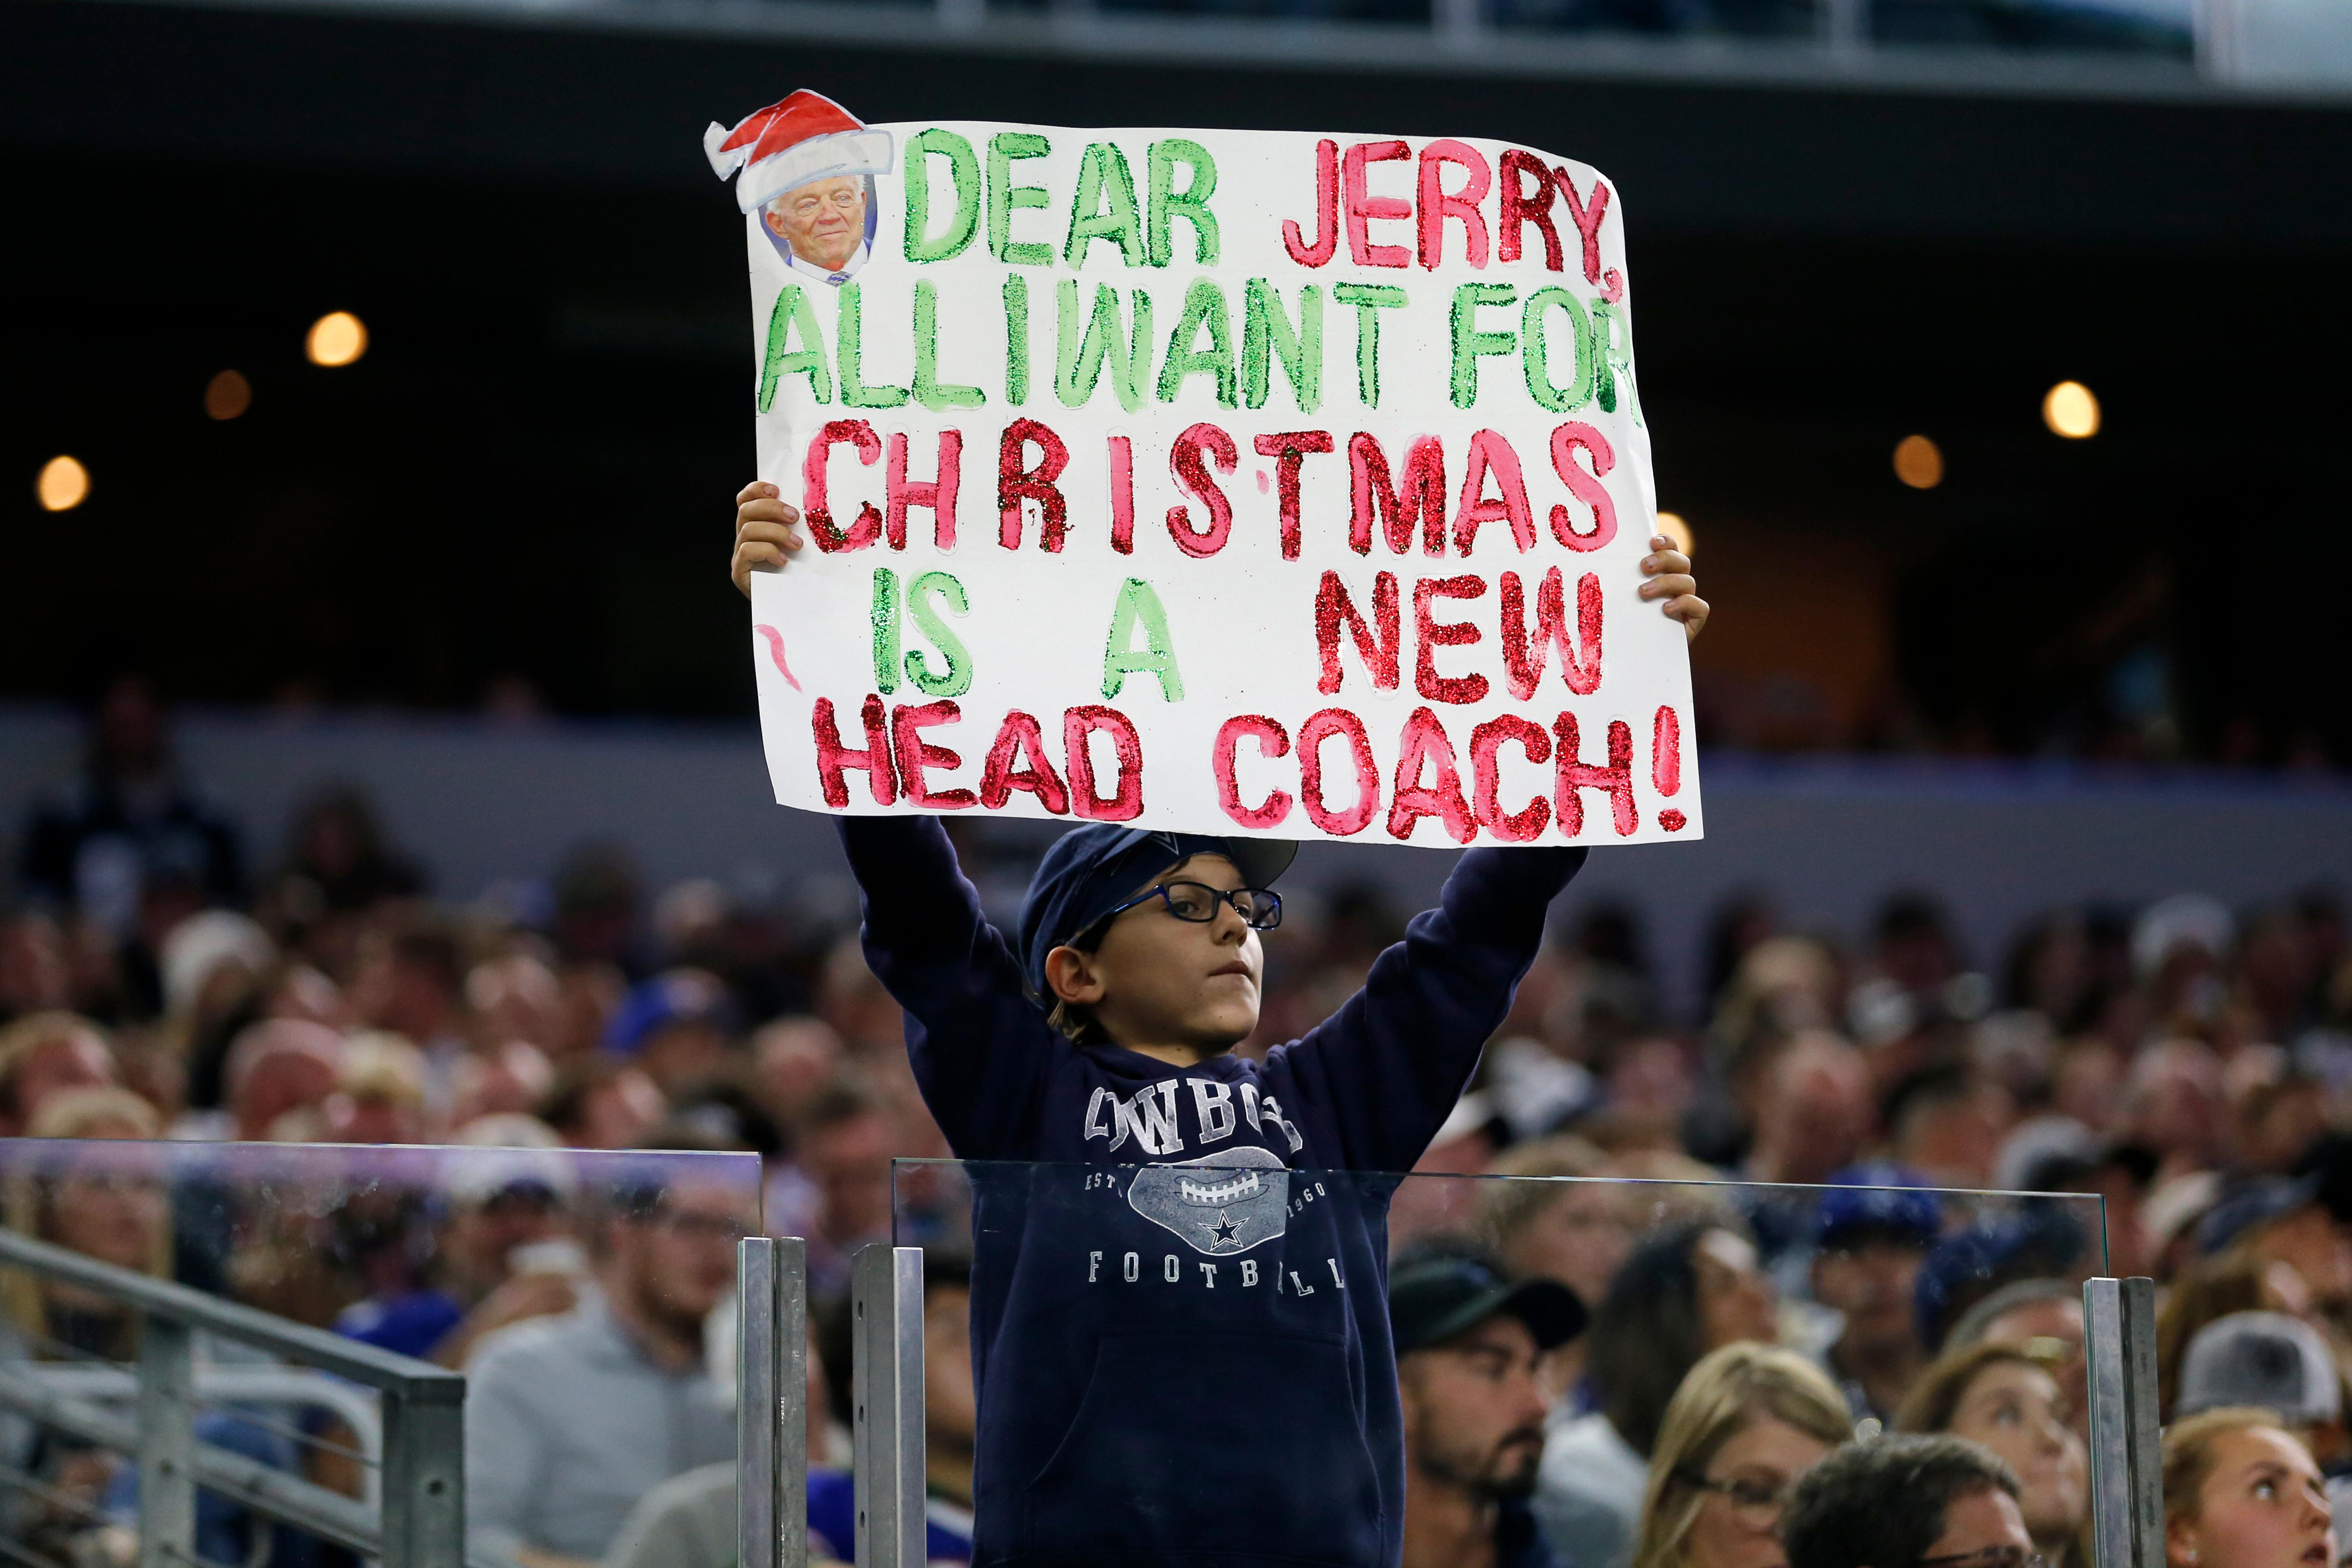 A young fan holds up a sign asking Dallas Cowboys team owner Jerry Jones for a new head coach in the first half of an NFL football game against the Buffalo Bills in Arlington, Texas, Thursday, Nov. 28, 2019. (AP Photo/Michael Ainsworth)